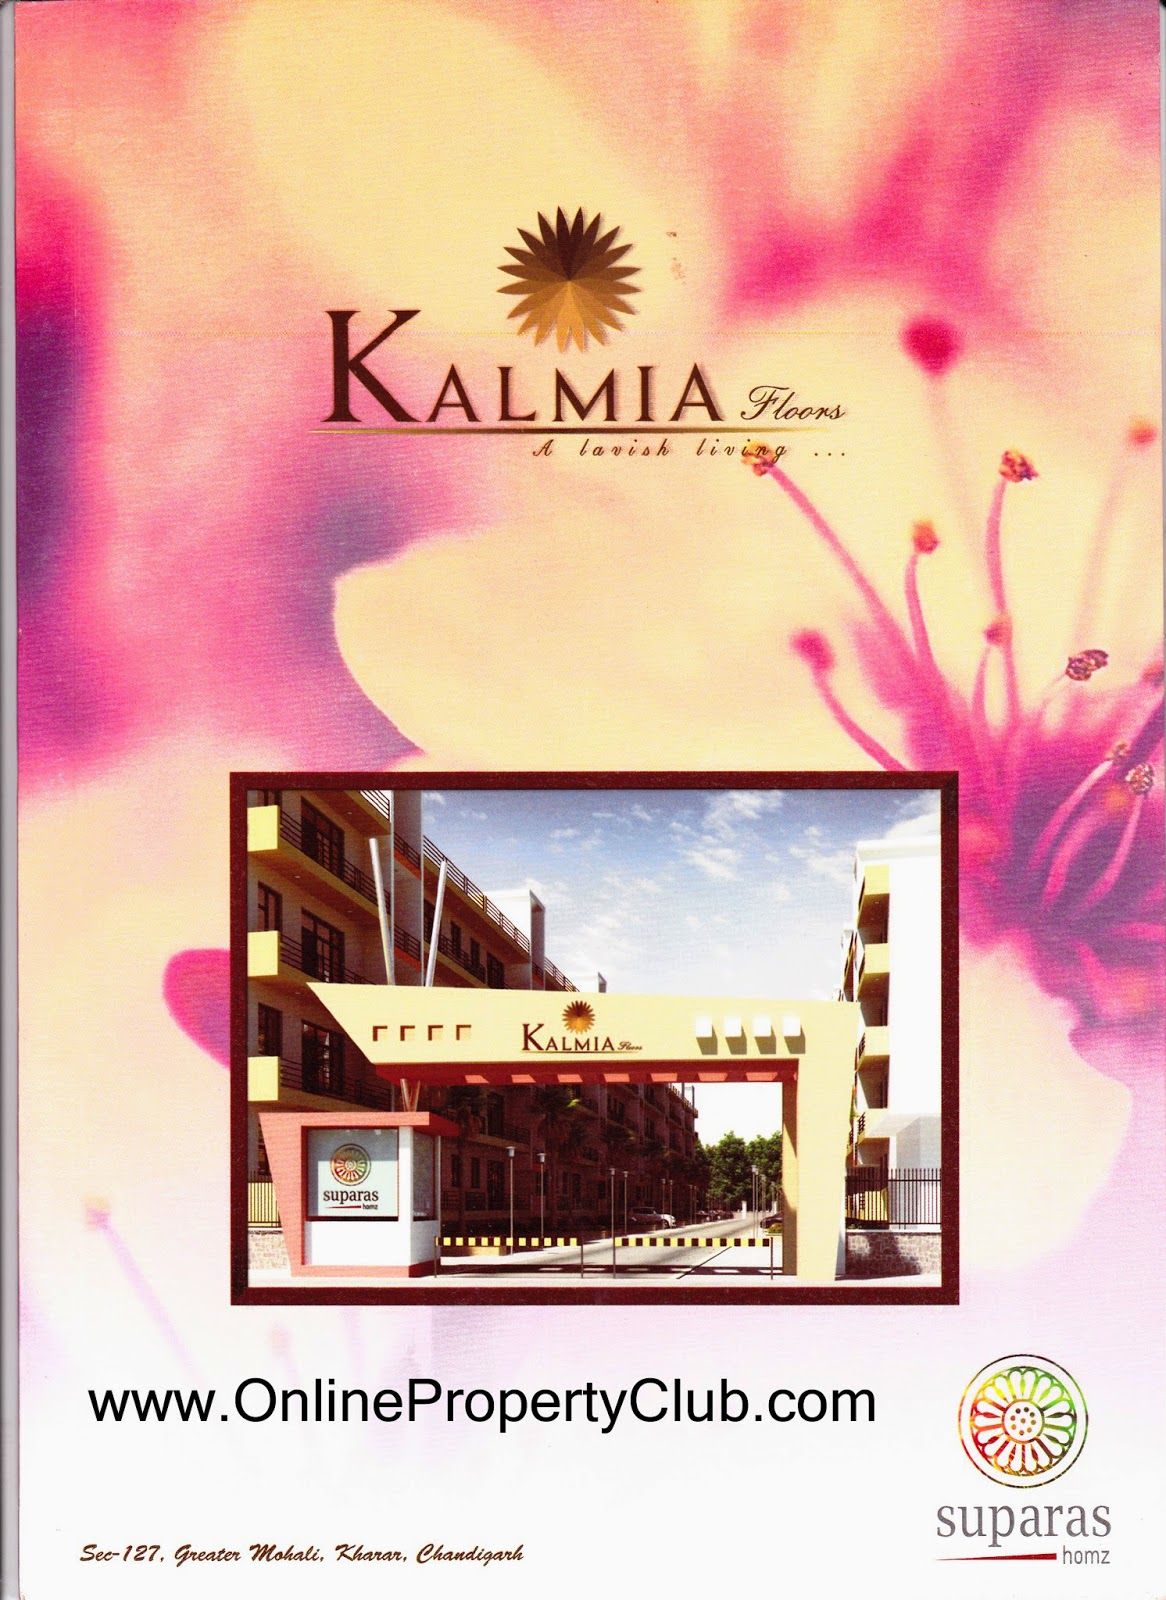 Suparas Kalmia Floors in Sector 127, Greater Mohali, Kharar (Near Chandigarh)